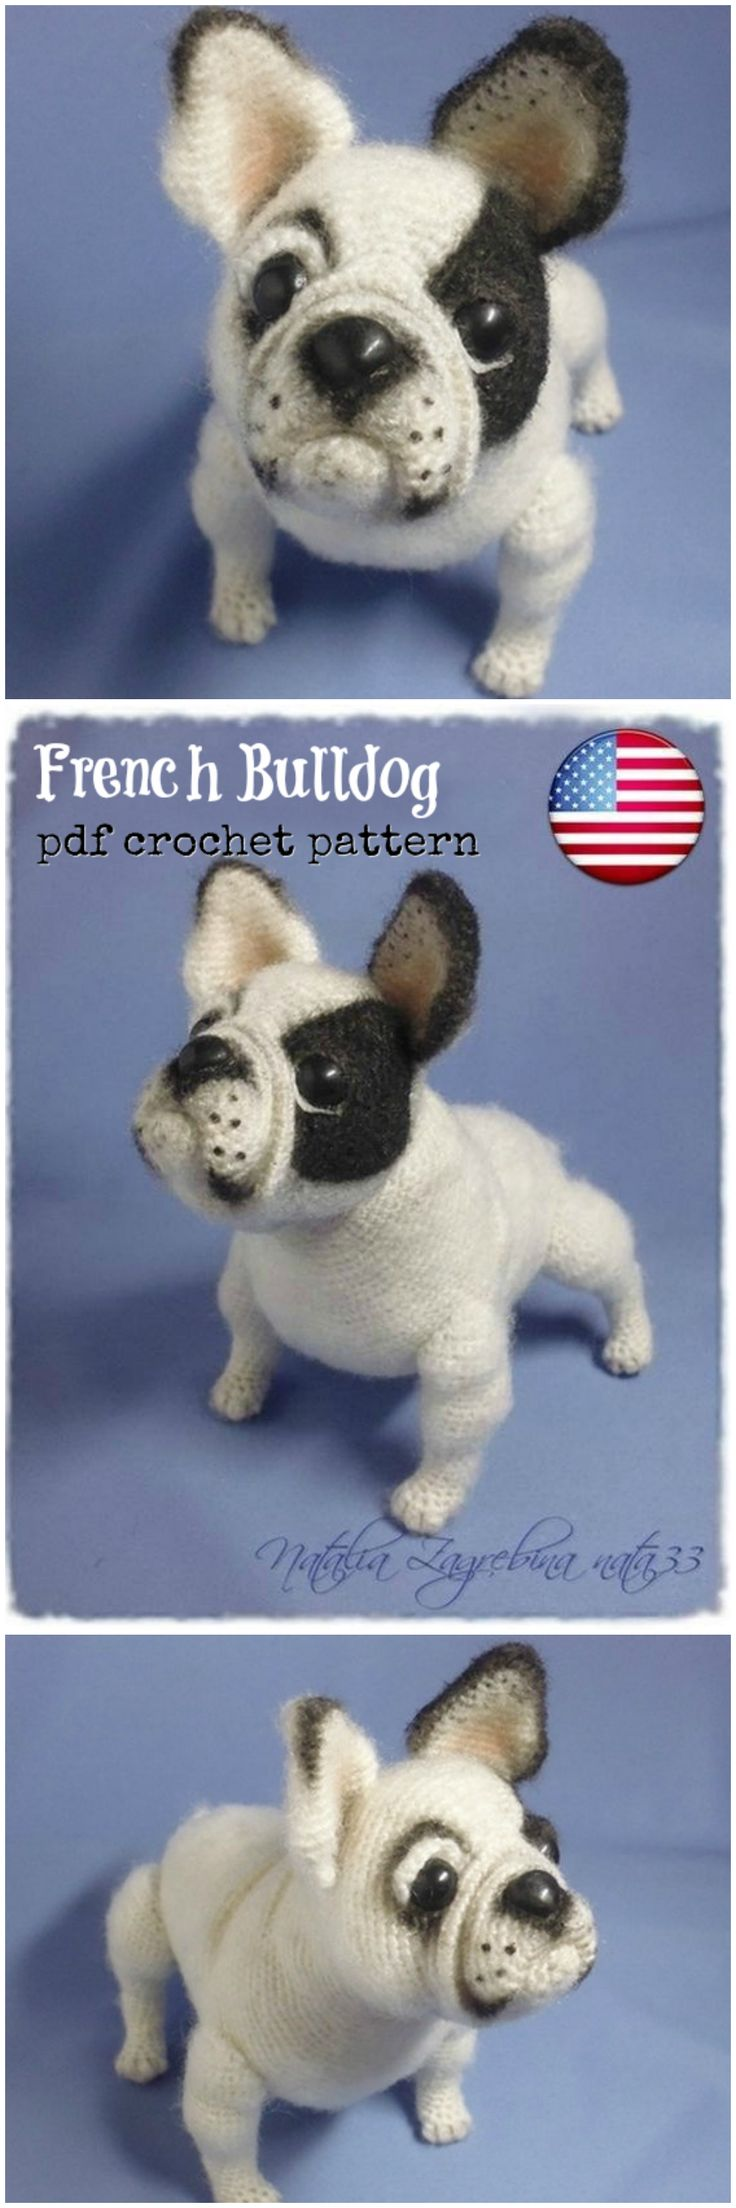 Adorable realistic French Bulldog crochet pattern! I am amazed at this pattern designer! She has multiple beautiful ultra-realistic crochet dog patterns for sale in her shop! So amazing with detailed notes on construction of this phenomenal piece of art! #etsy #ad #amigurumi